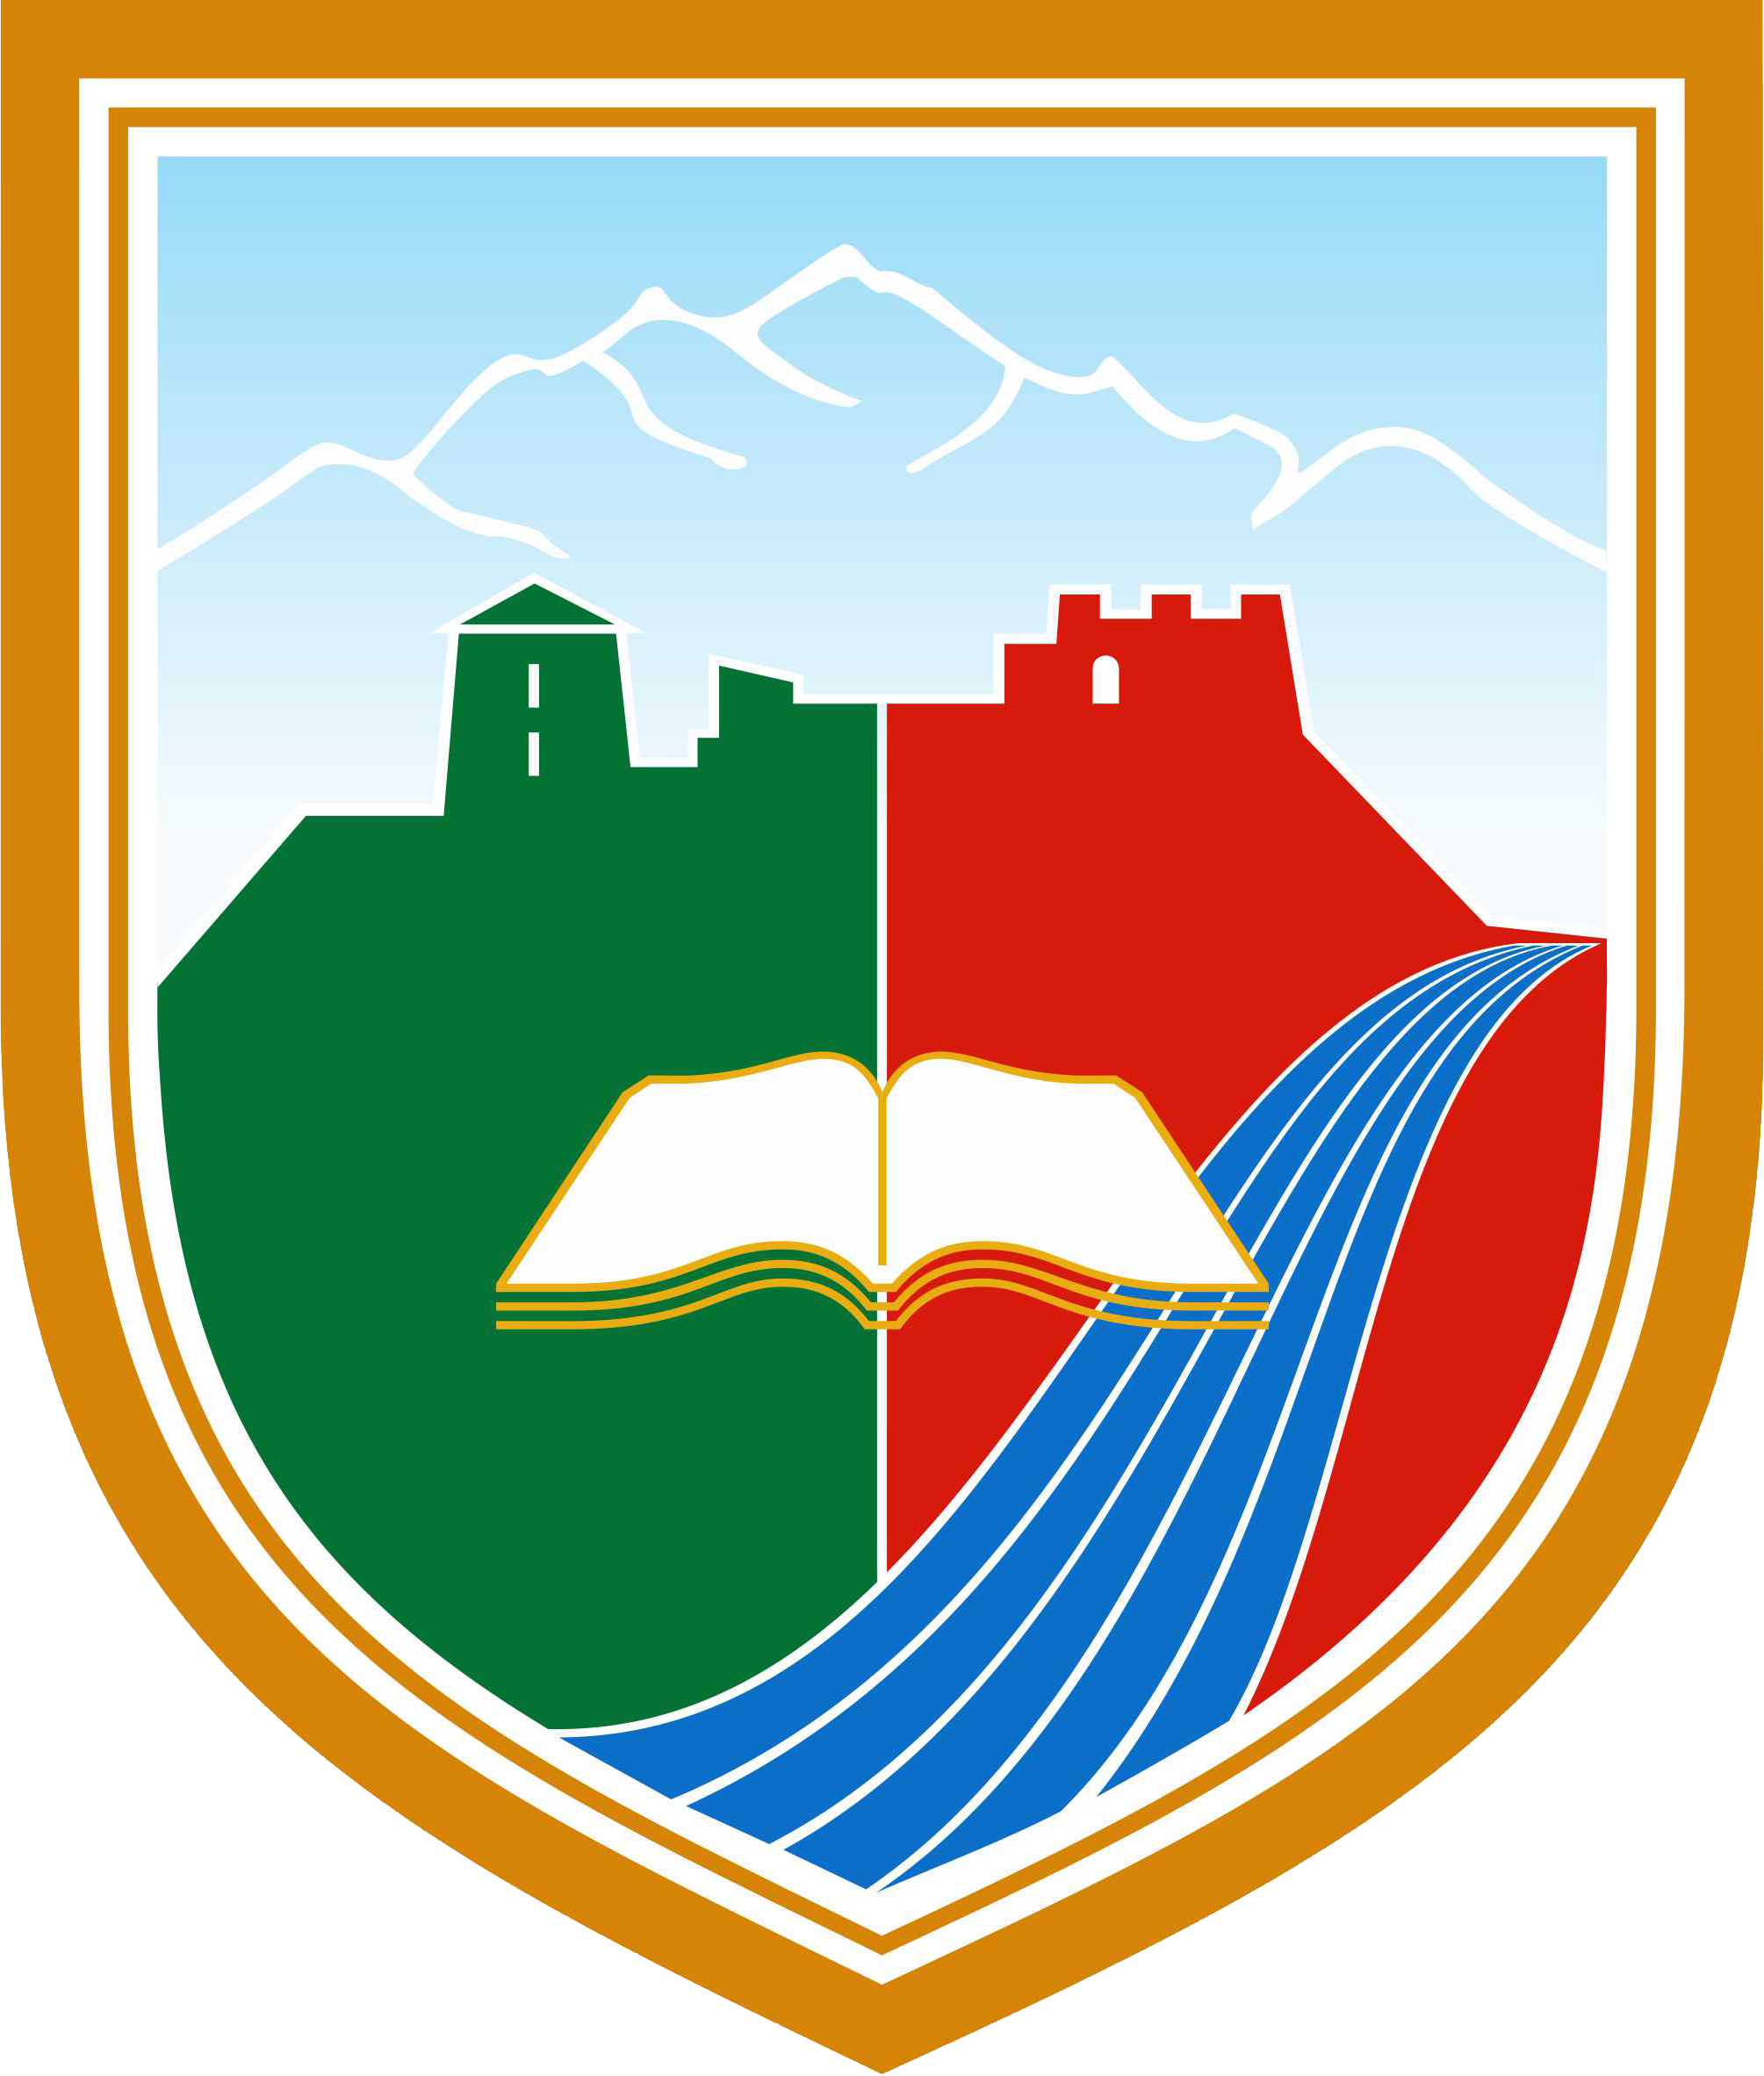 https://upload.wikimedia.org/wikipedia/commons/1/1d/Coat_of_Arms_of_Travnik.png